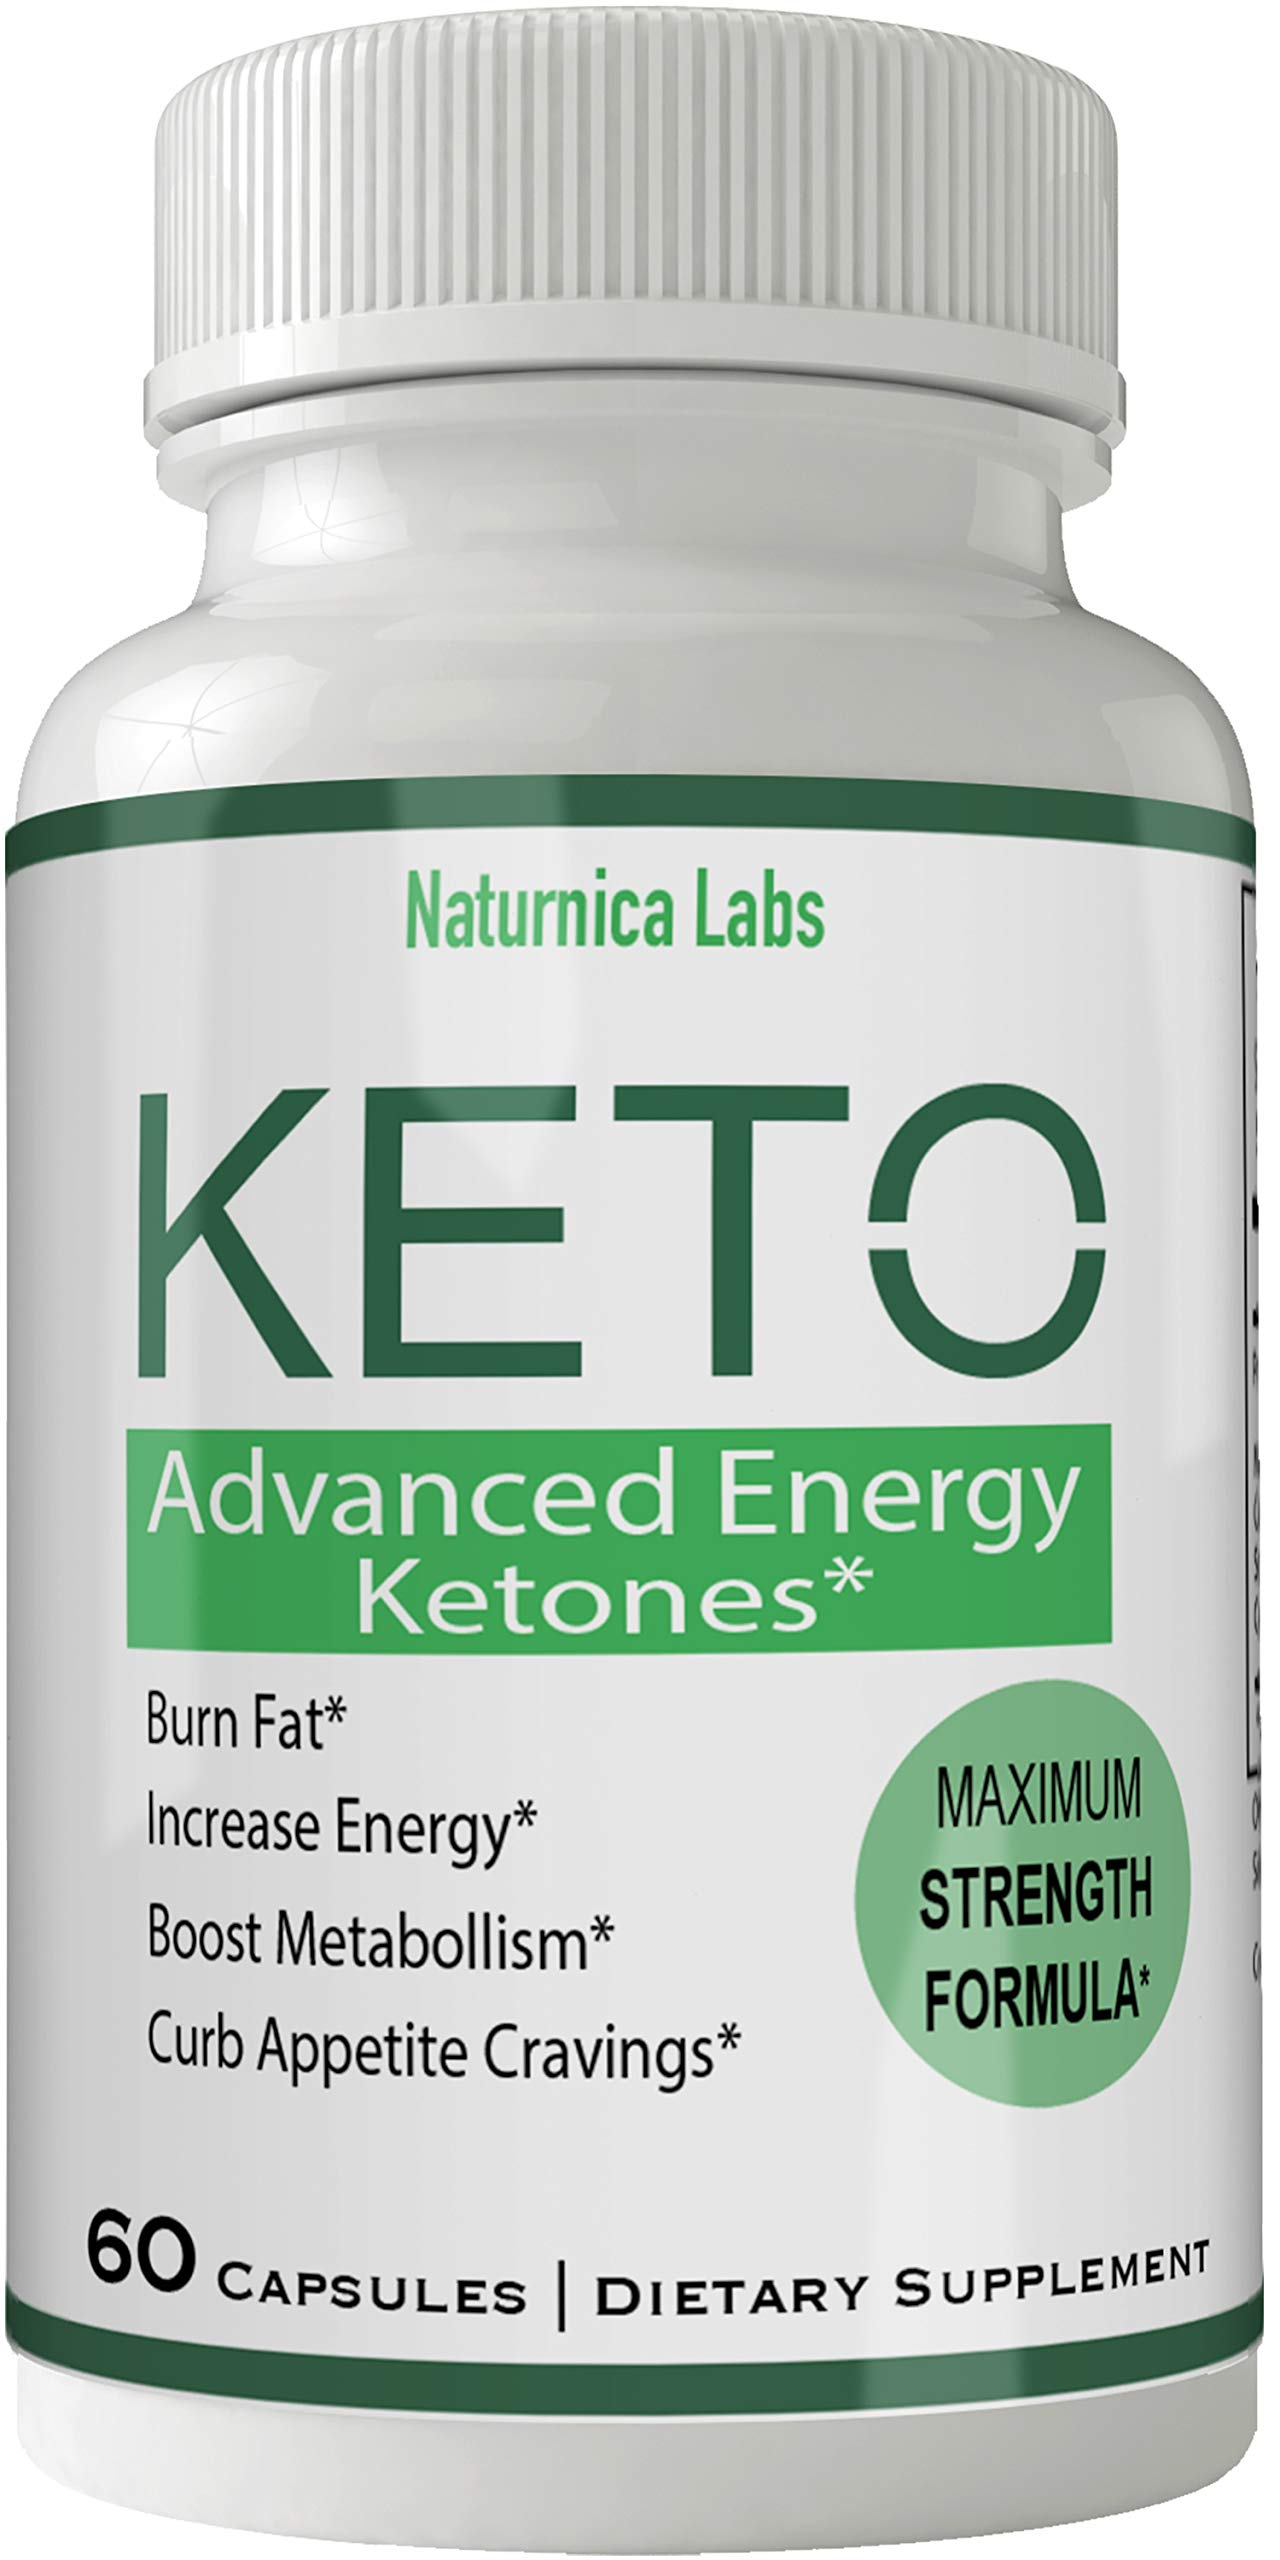 Naturnica Keto Diet Pills Advance Weight Loss Supplement Appetite Suppressant Natural Ketogenic 800 mg Formula with BHB Salts Ketone Diet Capsules to Boost Metabolism, Energy and Focus